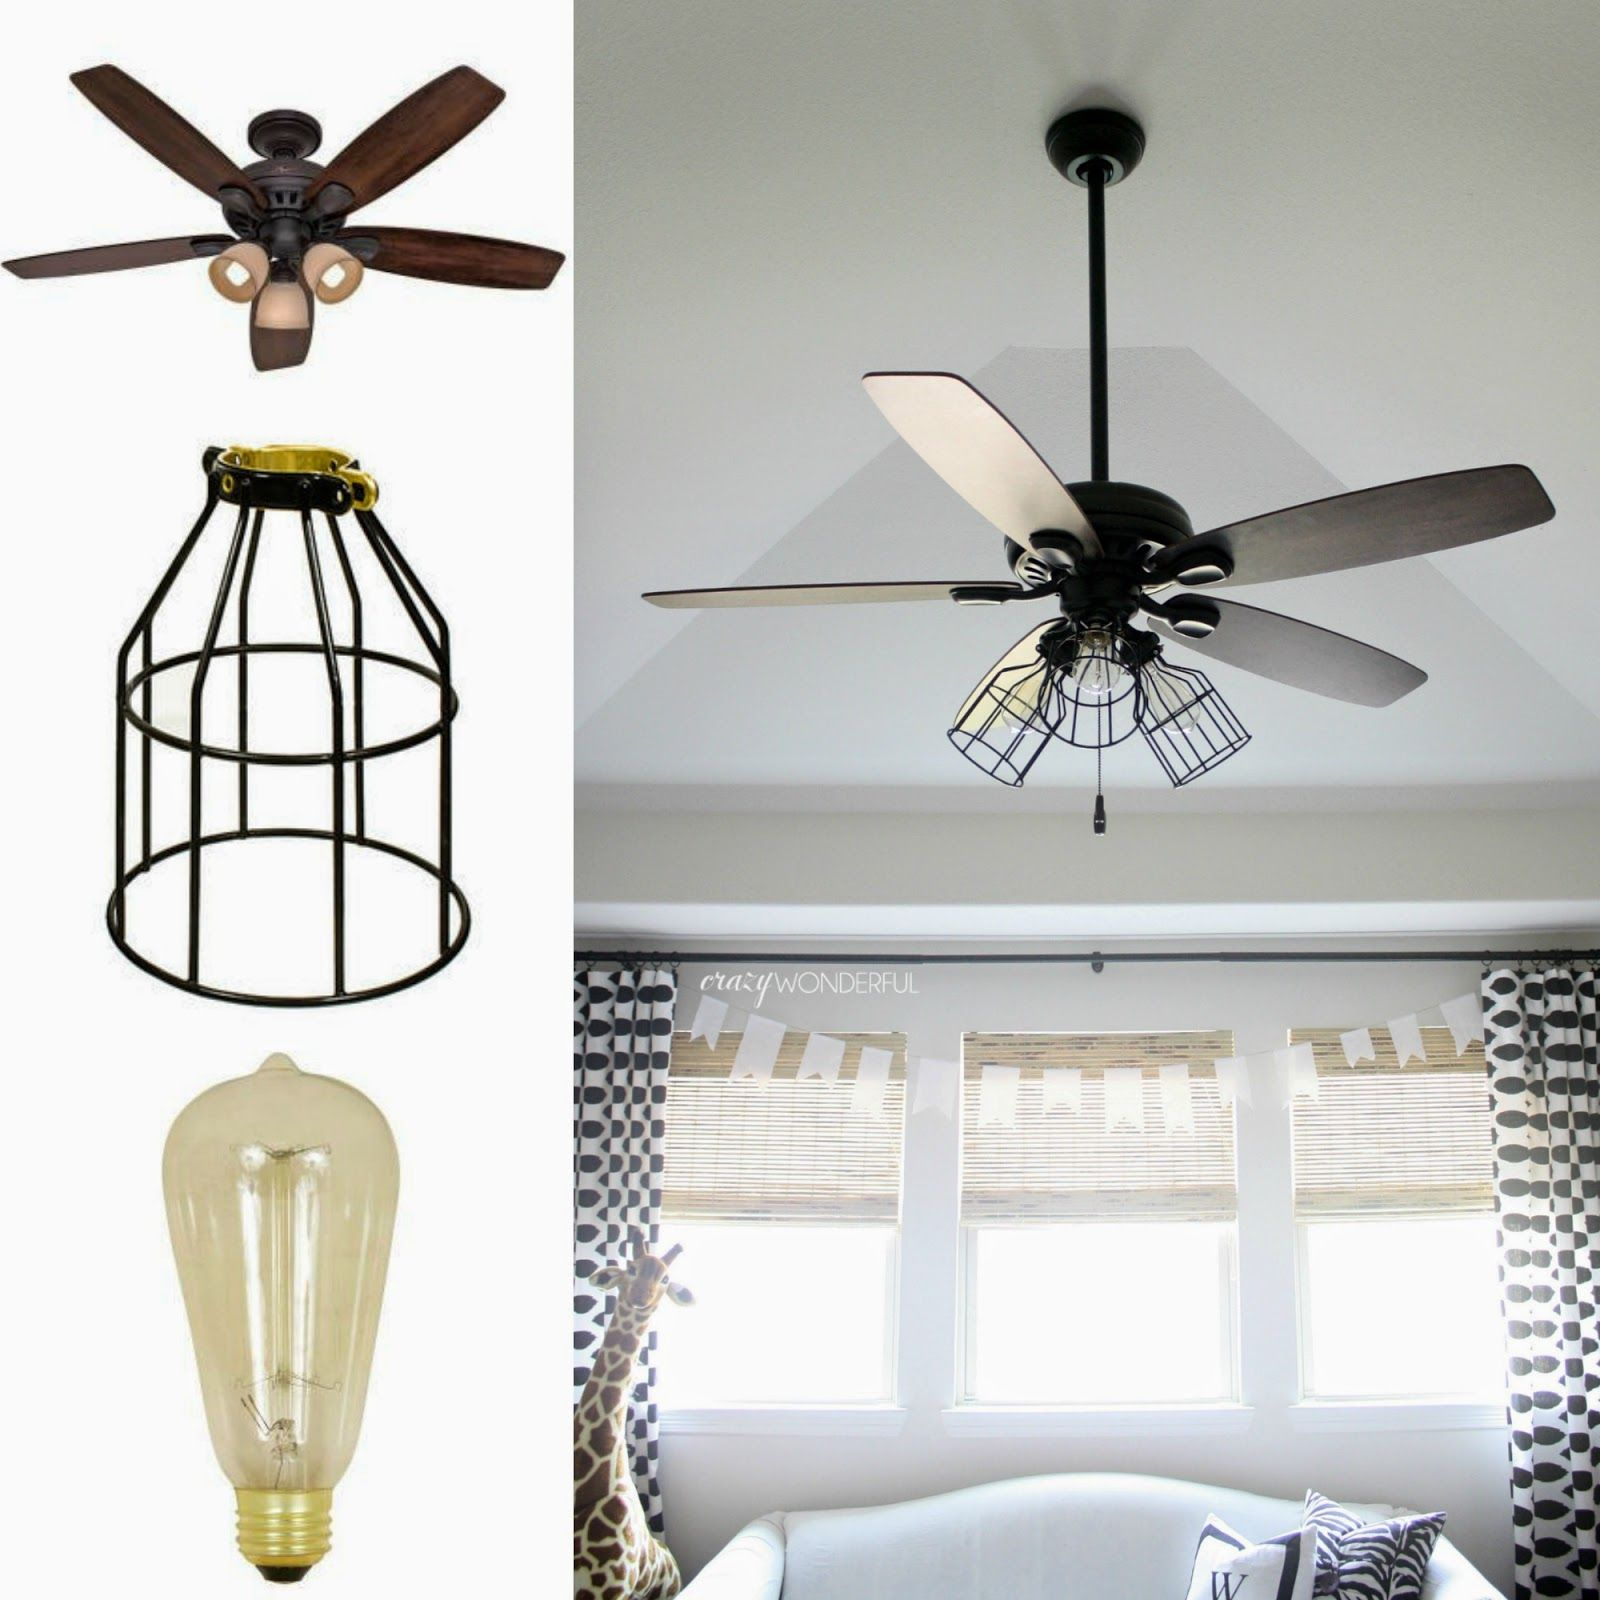 Attractive Crazy Wonderful: DIY Cage Light Ceiling Fan. Kitchen ...